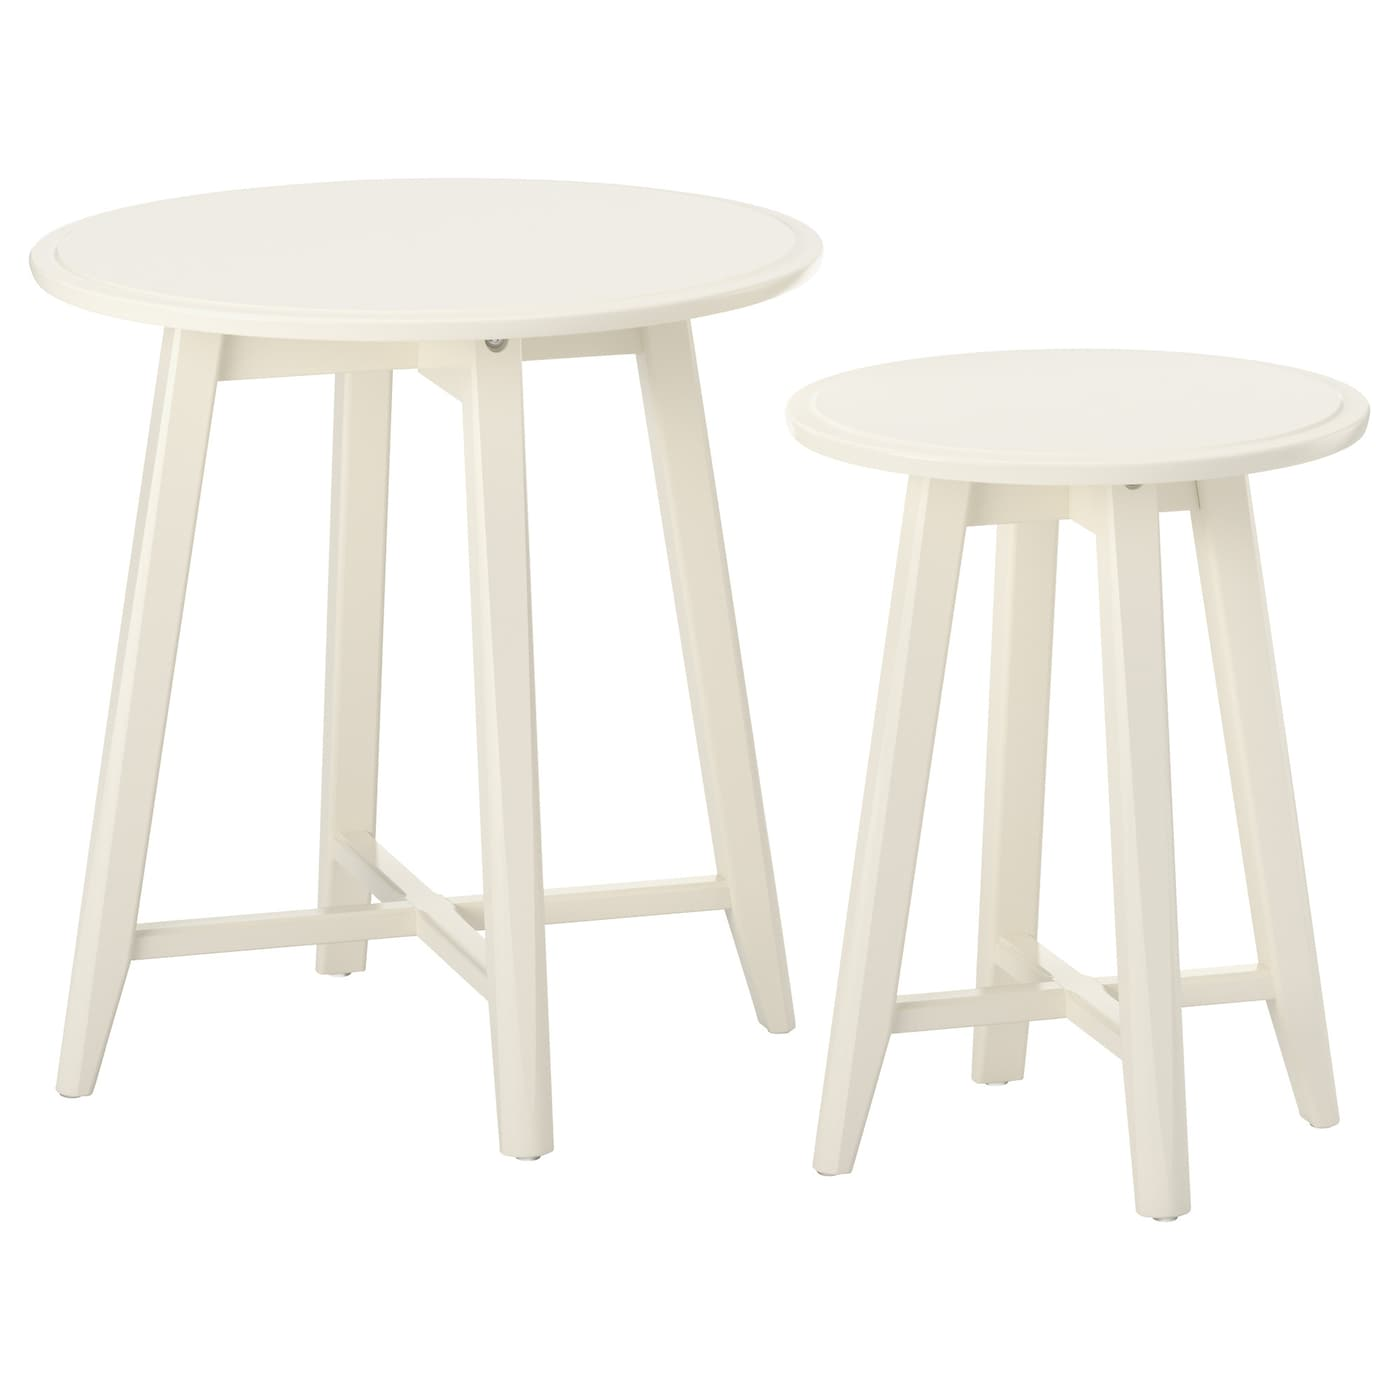 KRAGSTA Nest of tables set of 2 White IKEA